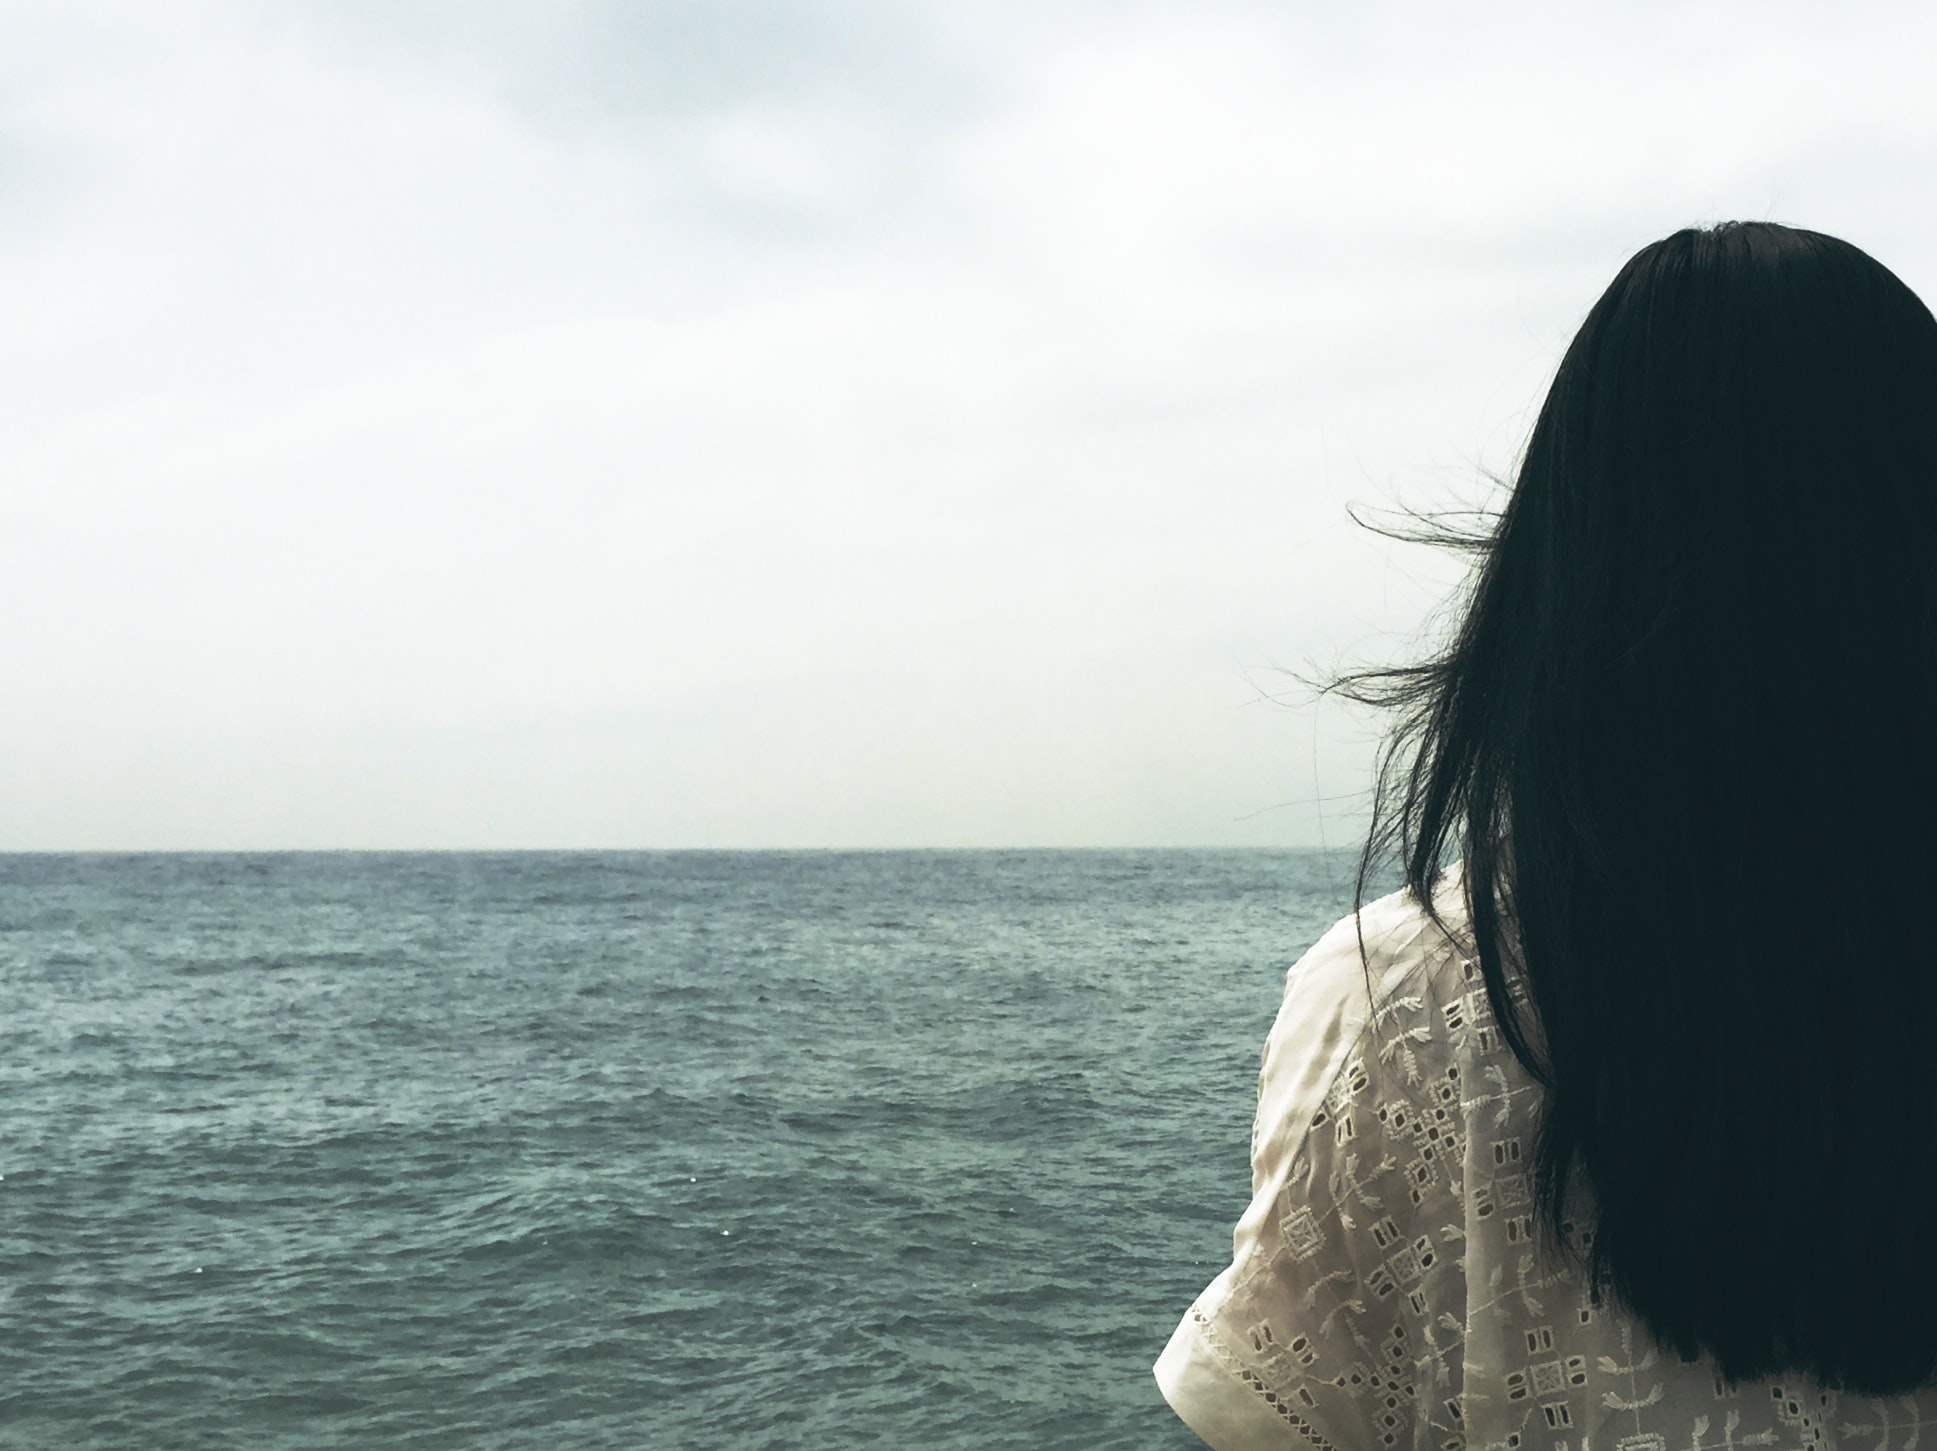 A dark-haired woman looking off into the choppy sea stretching to the horizon